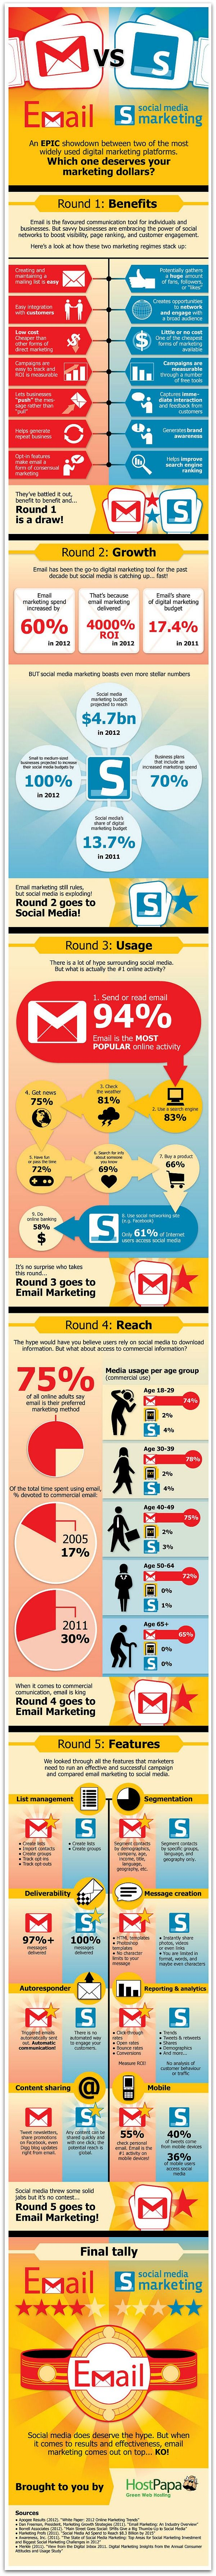 Email_Marketing_Infographic